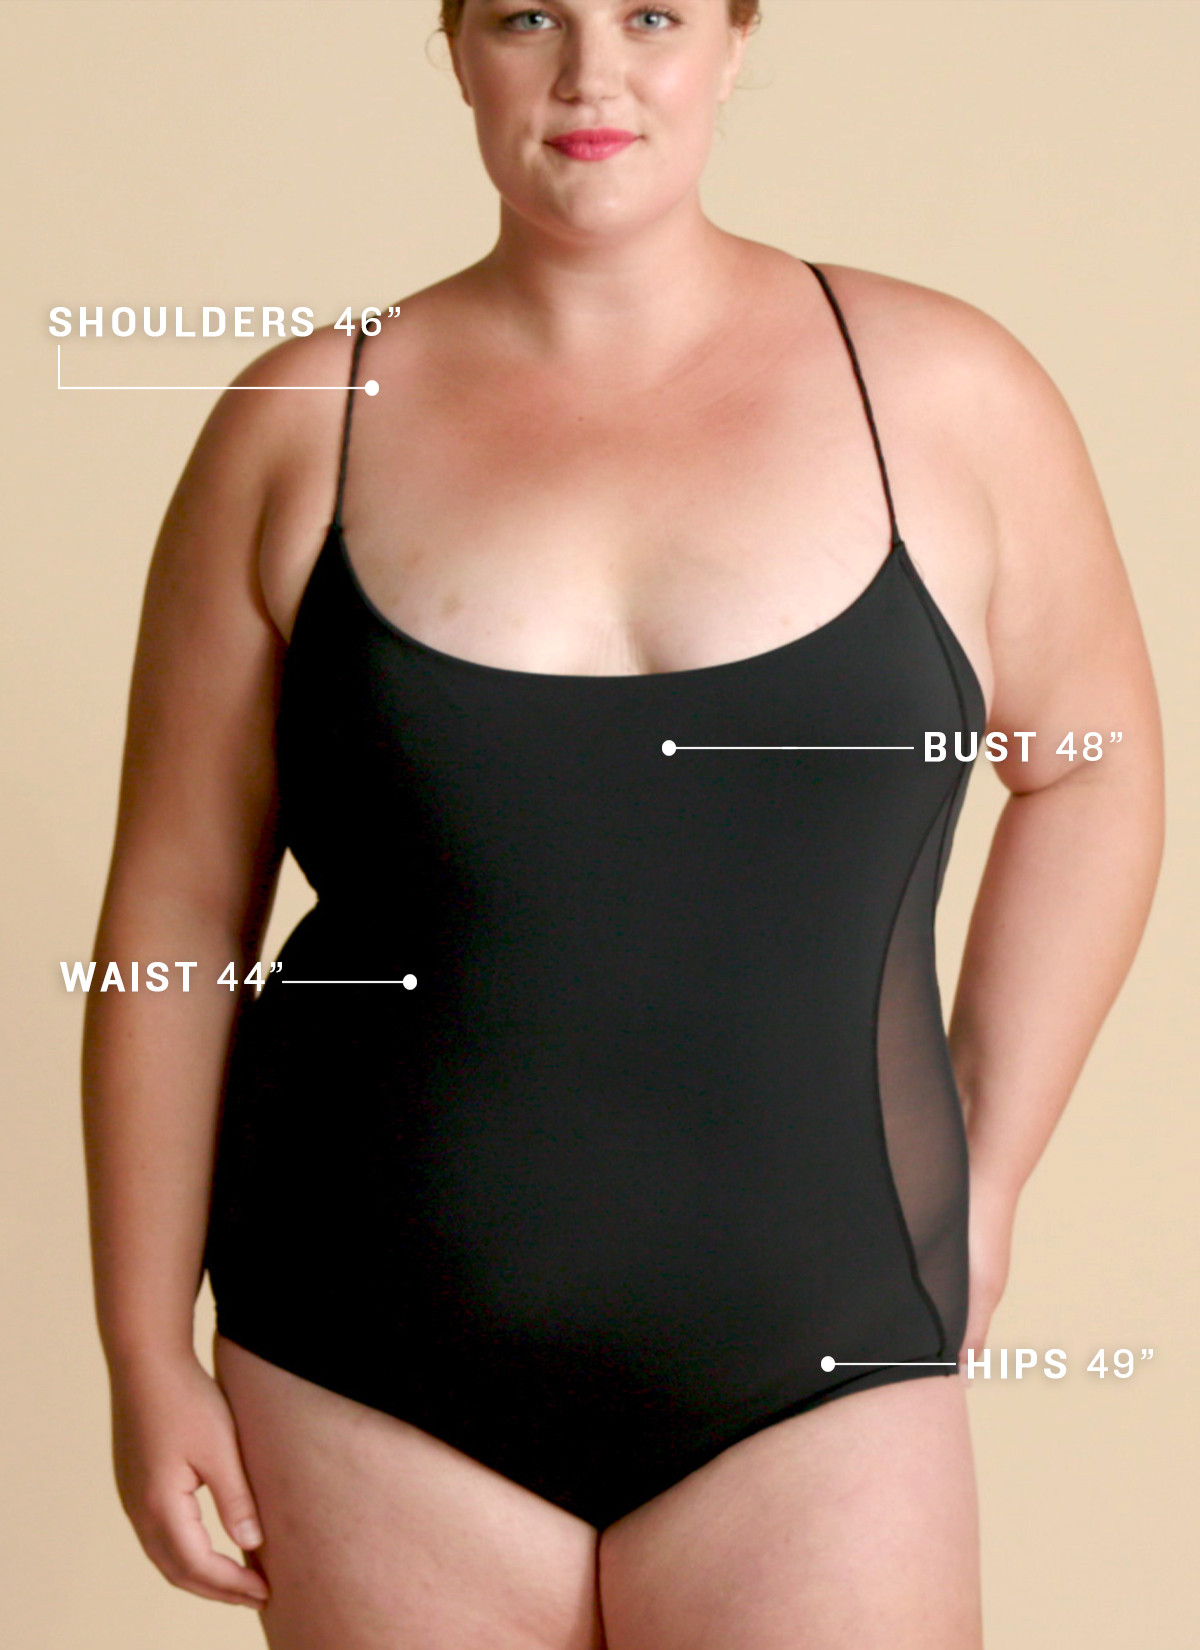 Apple-Shaped Body Measurements